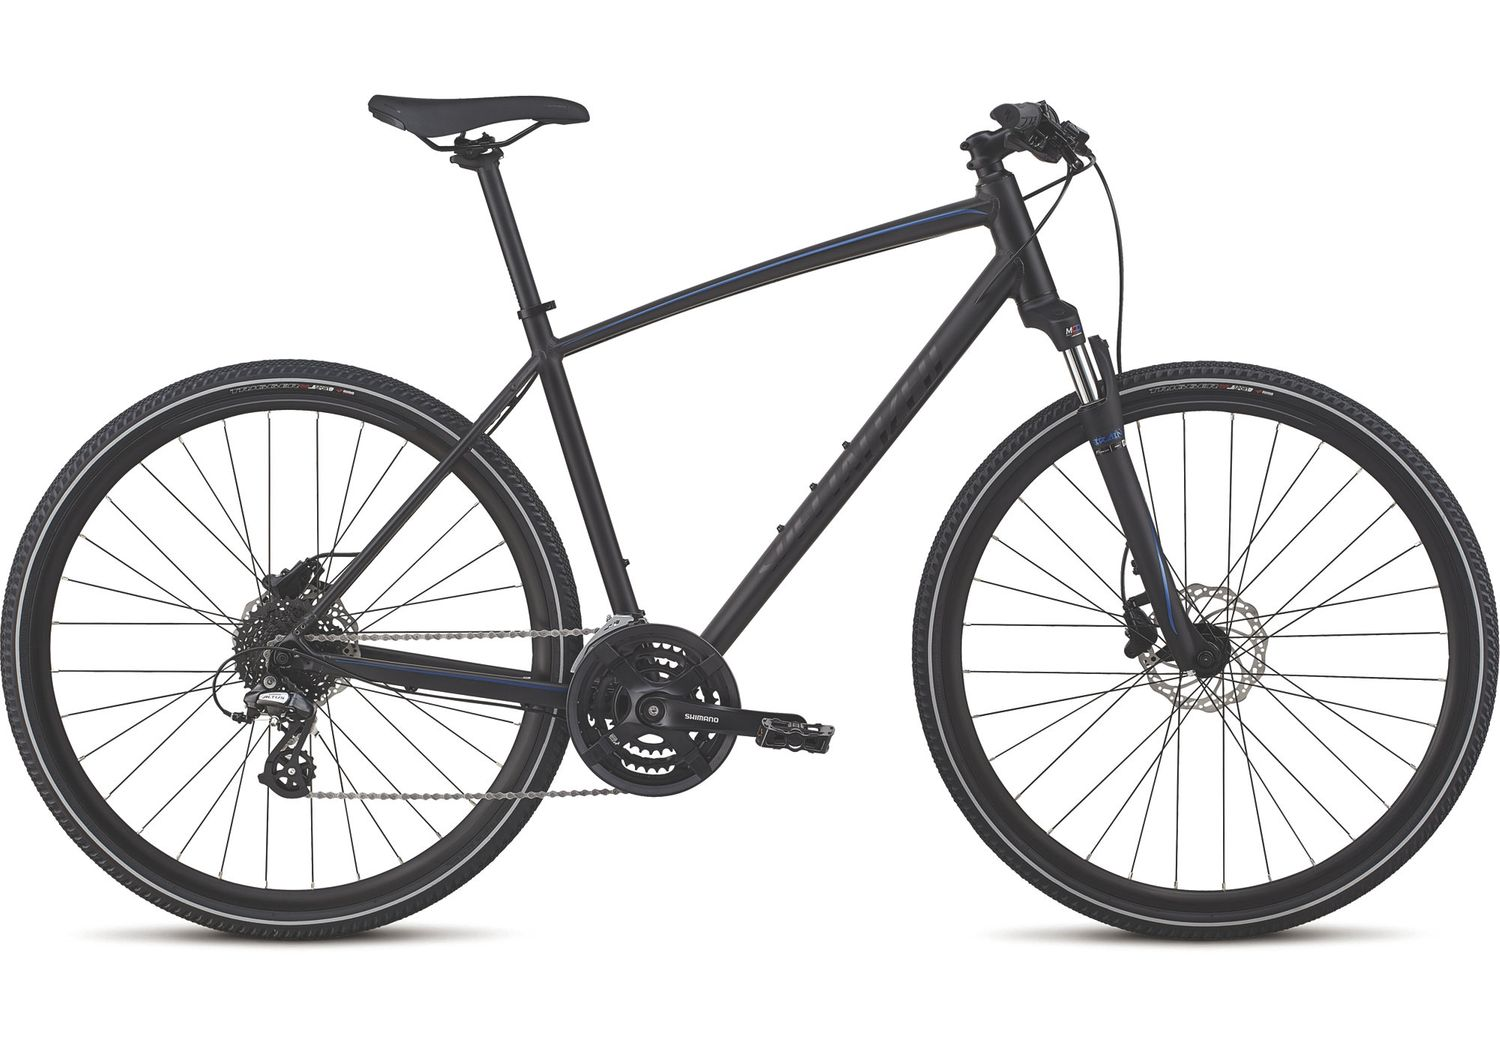 Specialized 2019 Cross Trail Hydraulic Disc